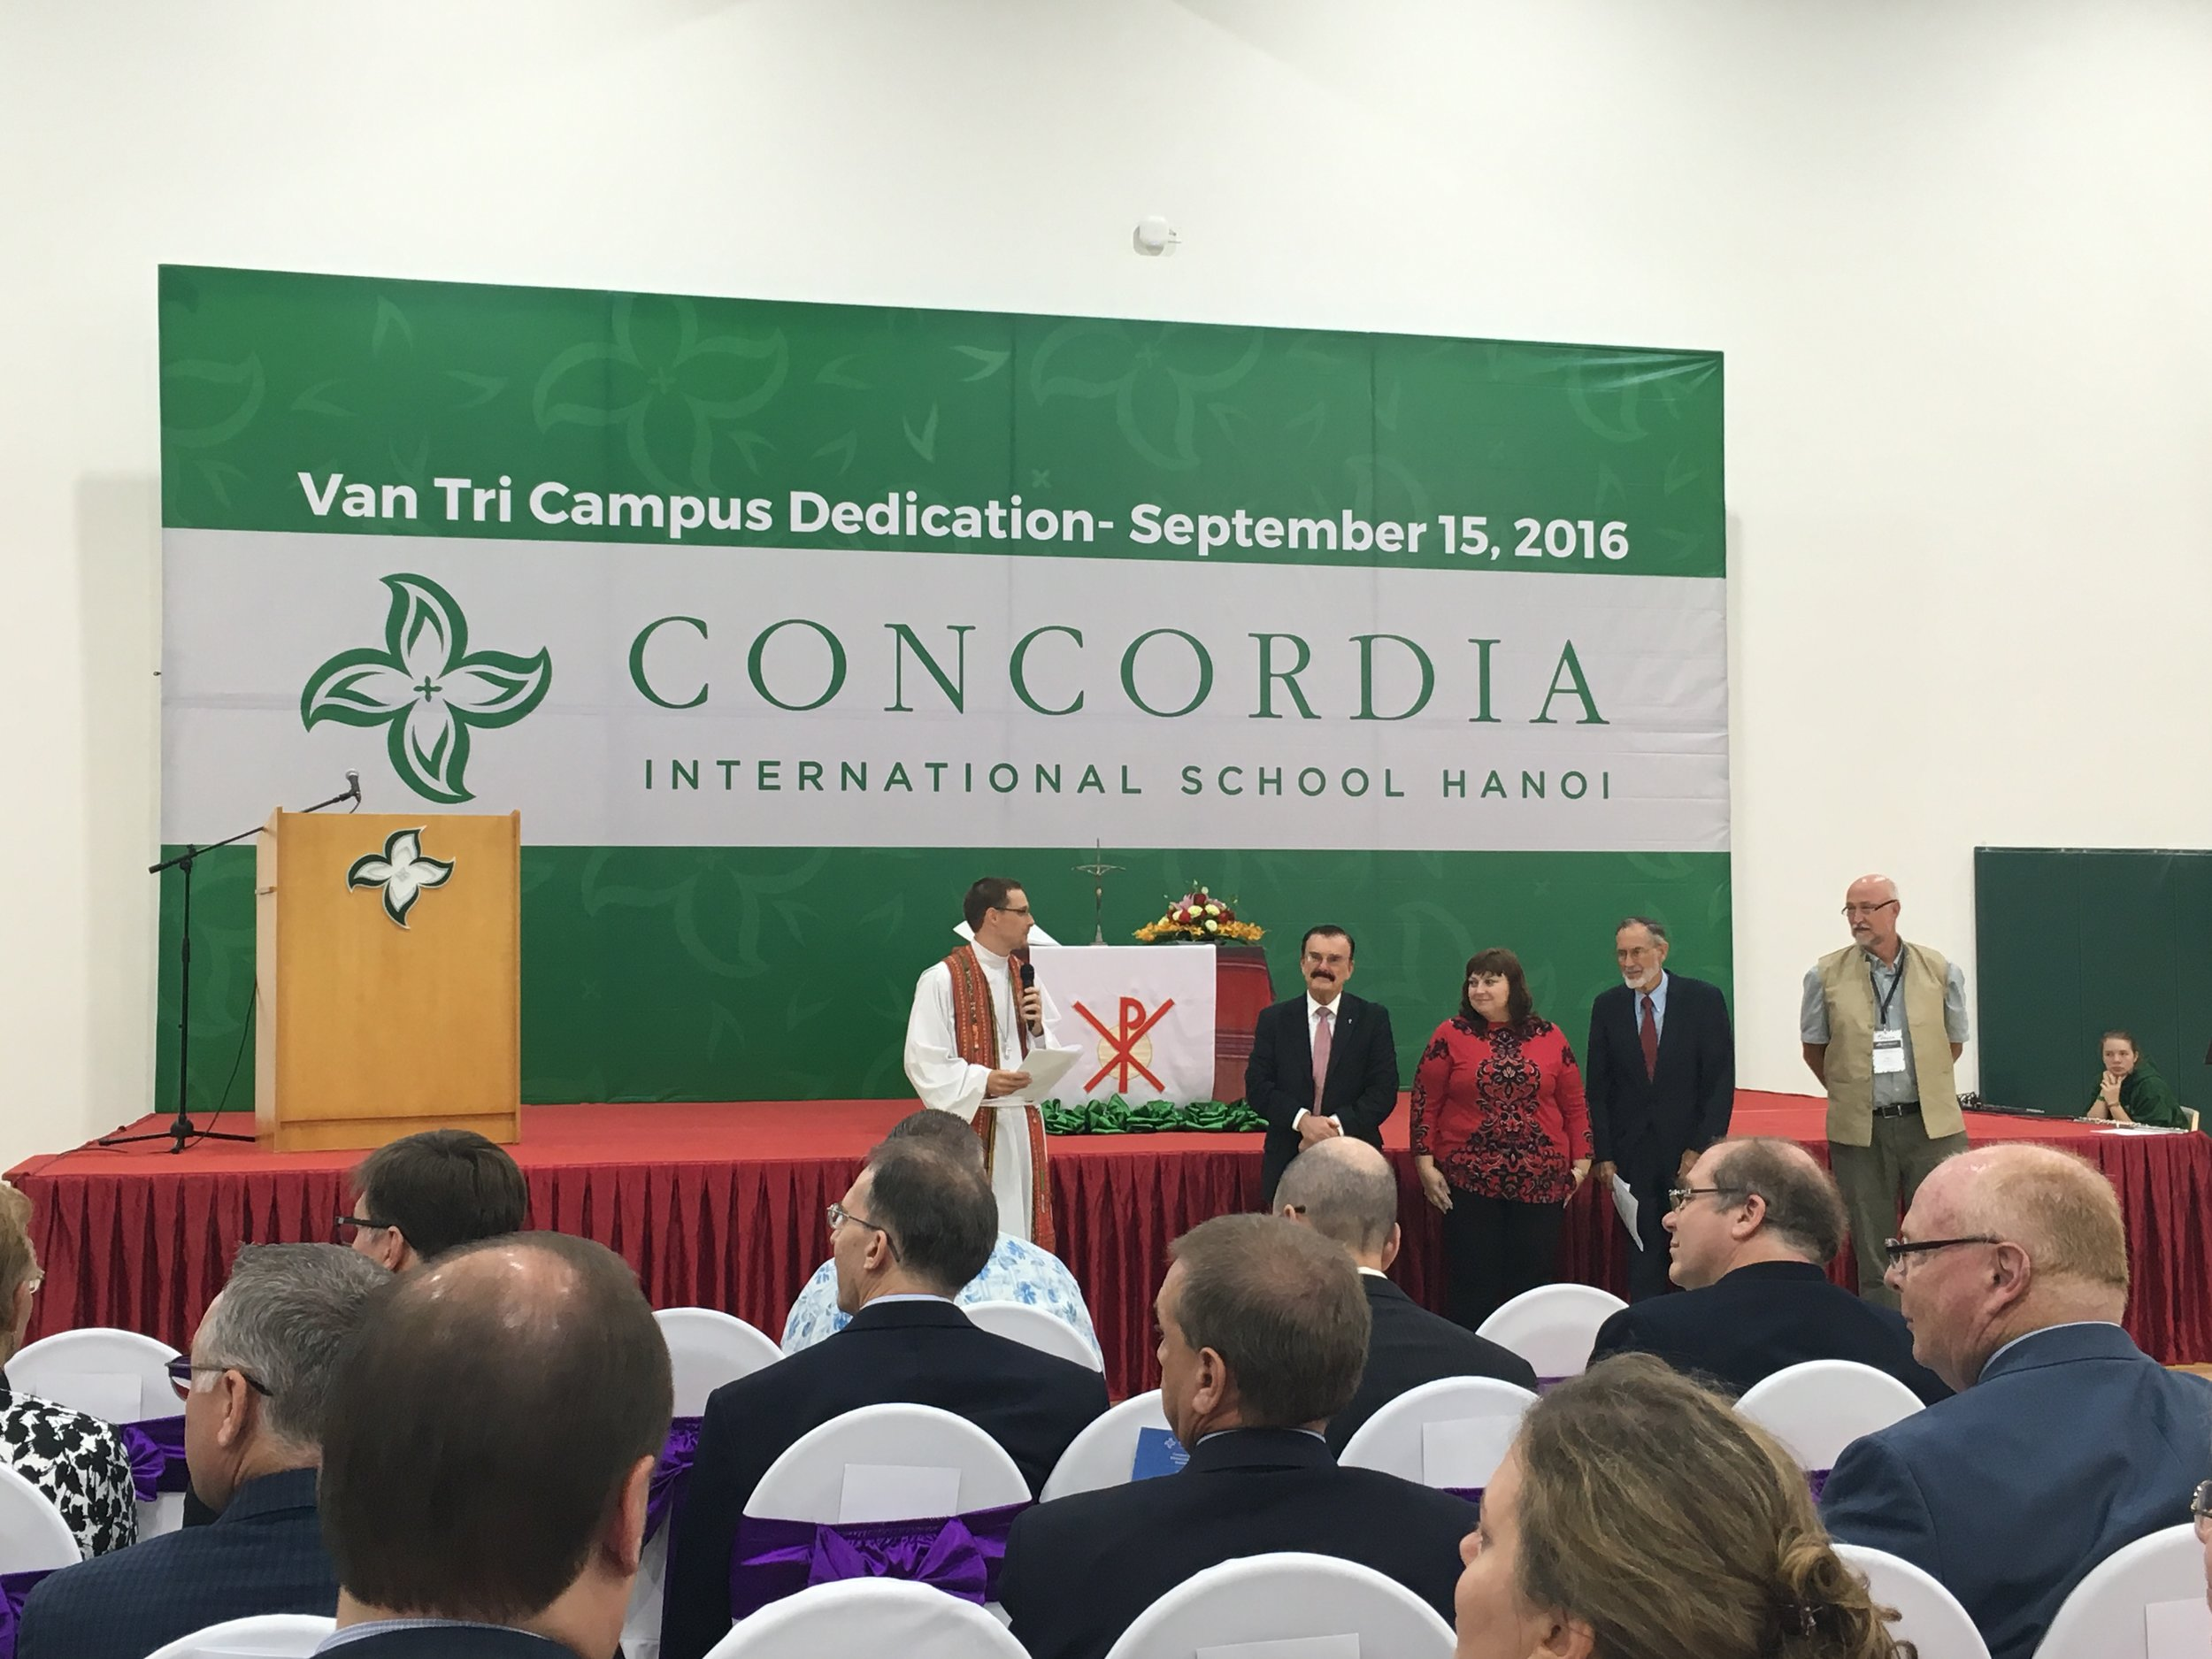 Dedication of new campus at Concordia International School Hanoi